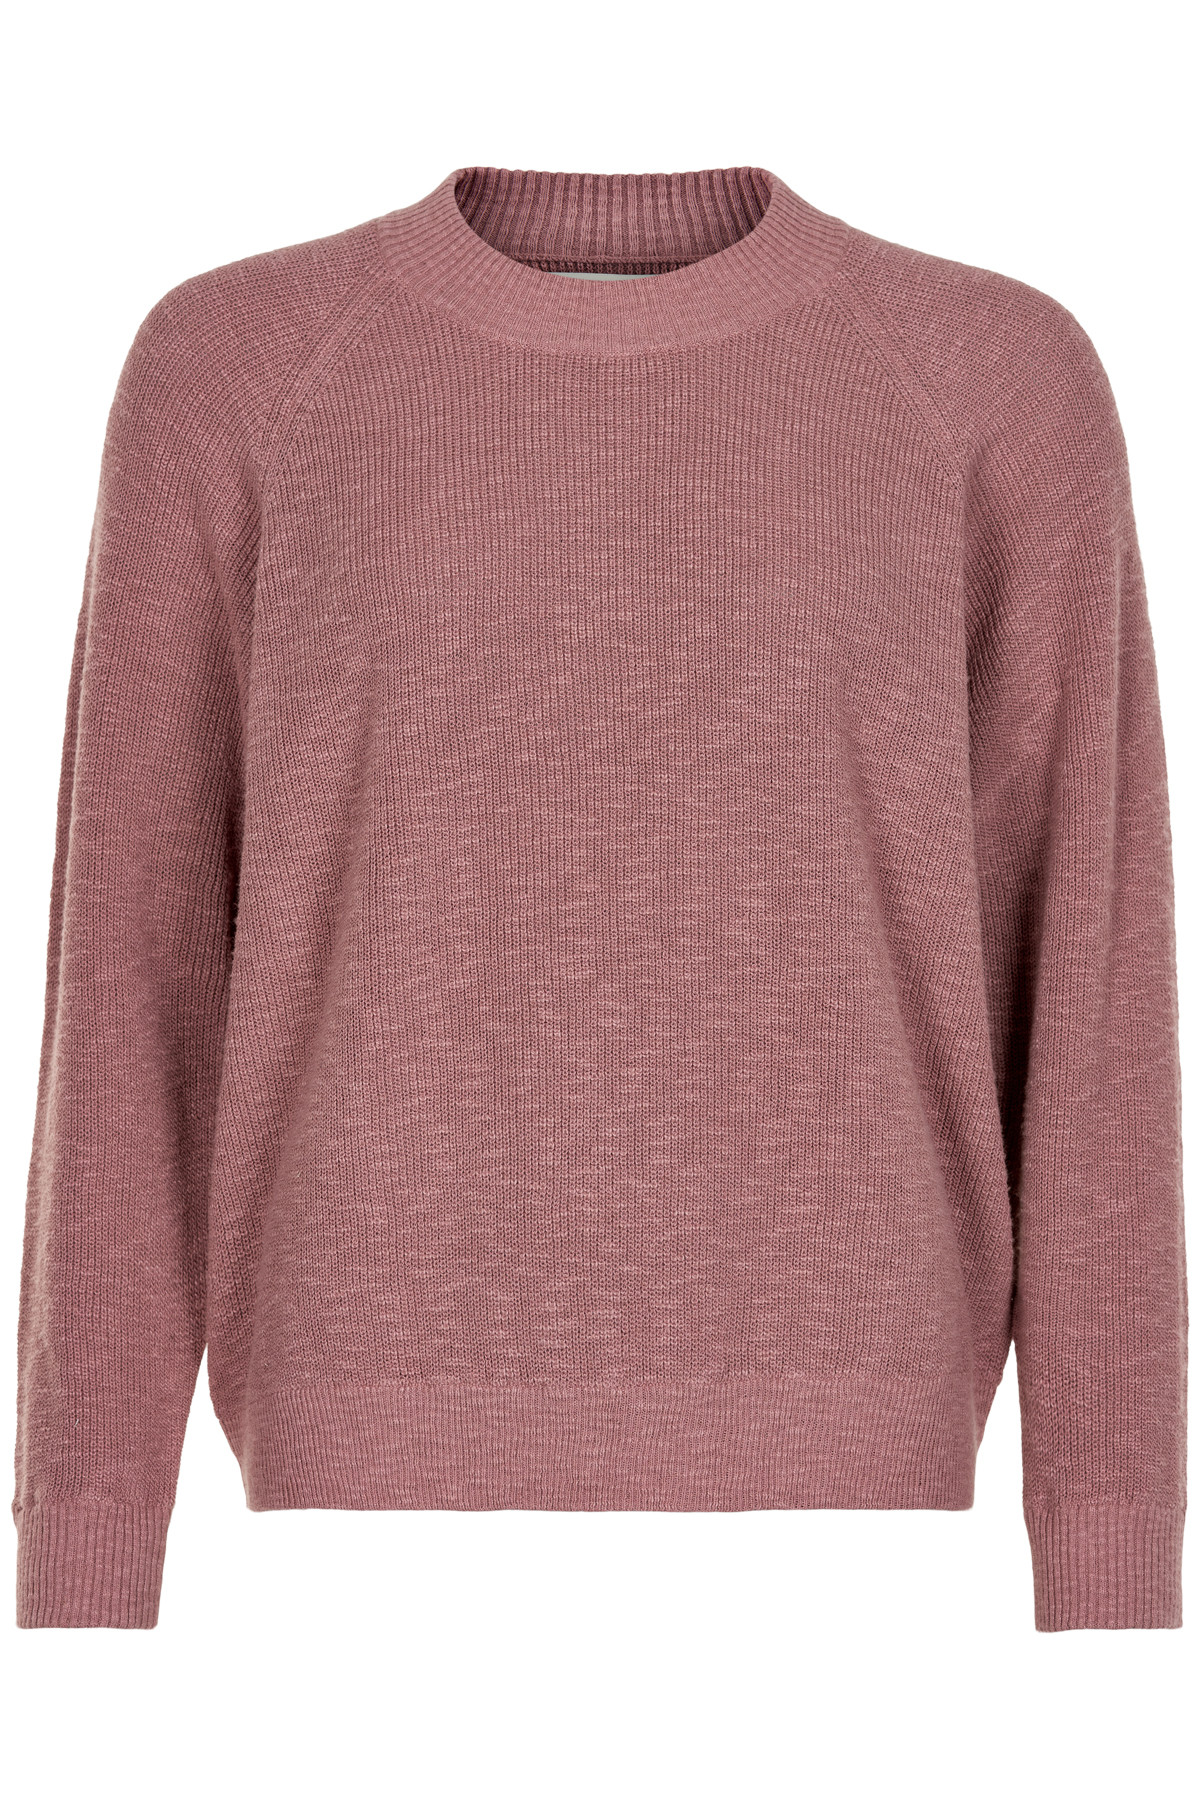 Image of   AND LESS ALBAMBINA PULLOVER 5220201 2530 (Nosta Rose, L)